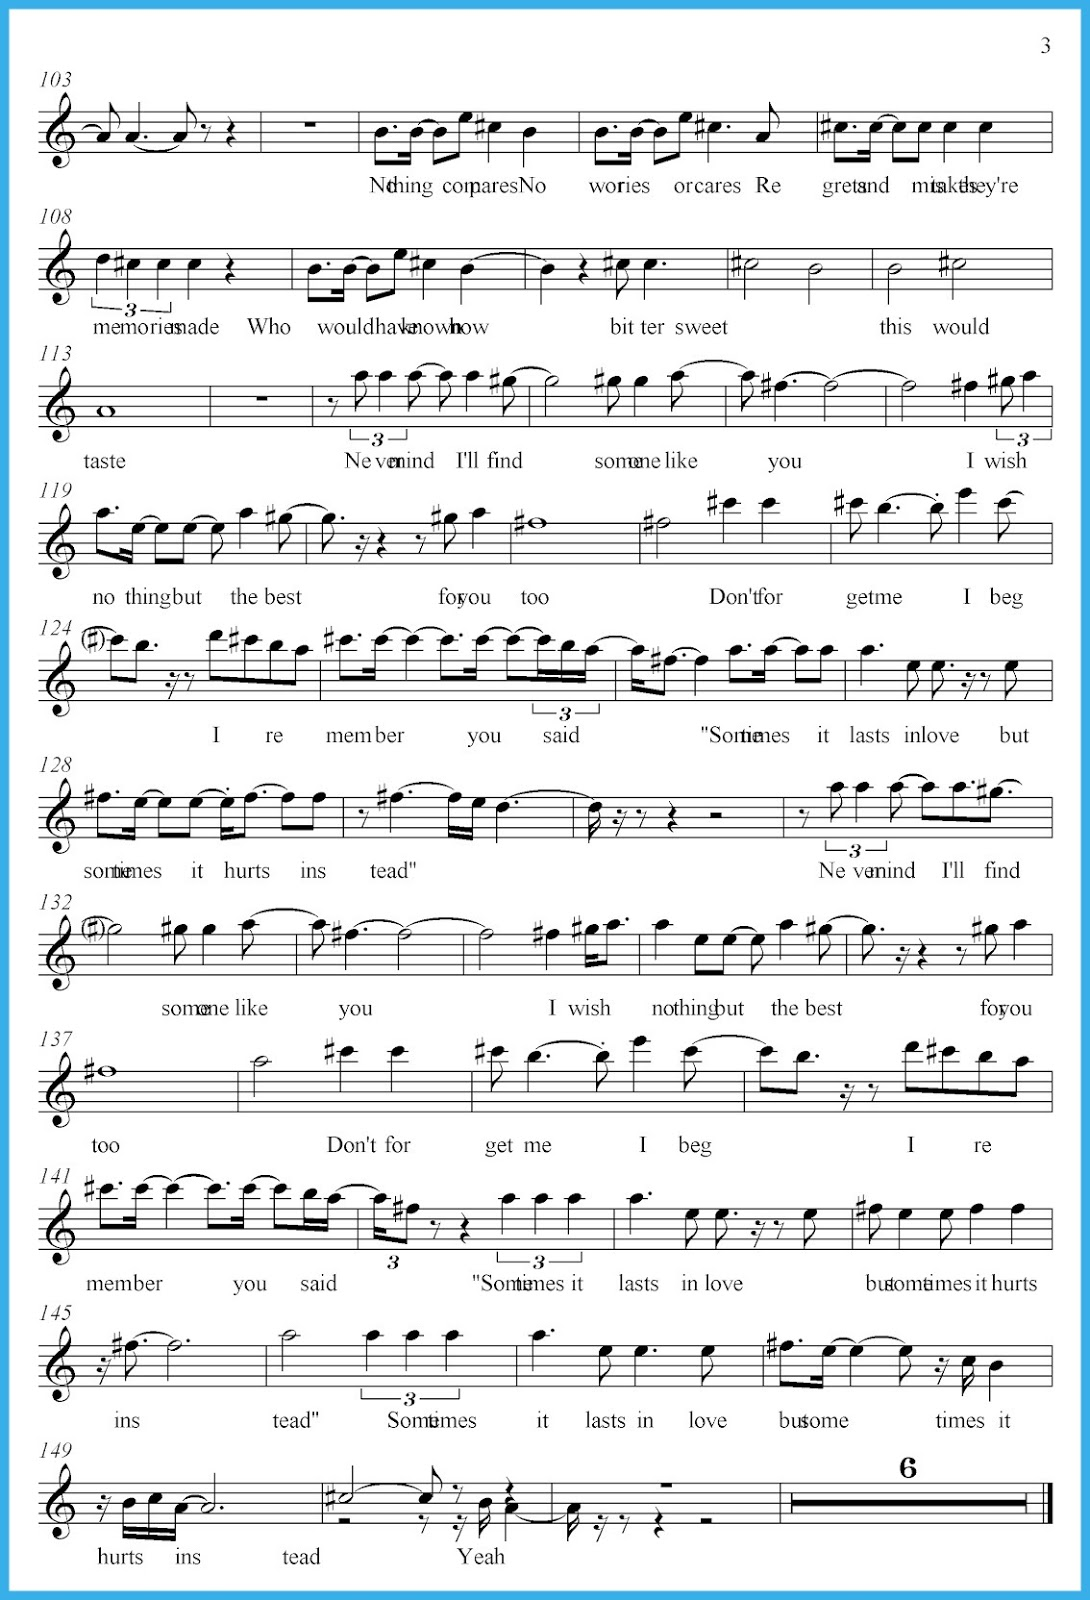 Someone Like You Adele Score And Track Sheet Music Free Free